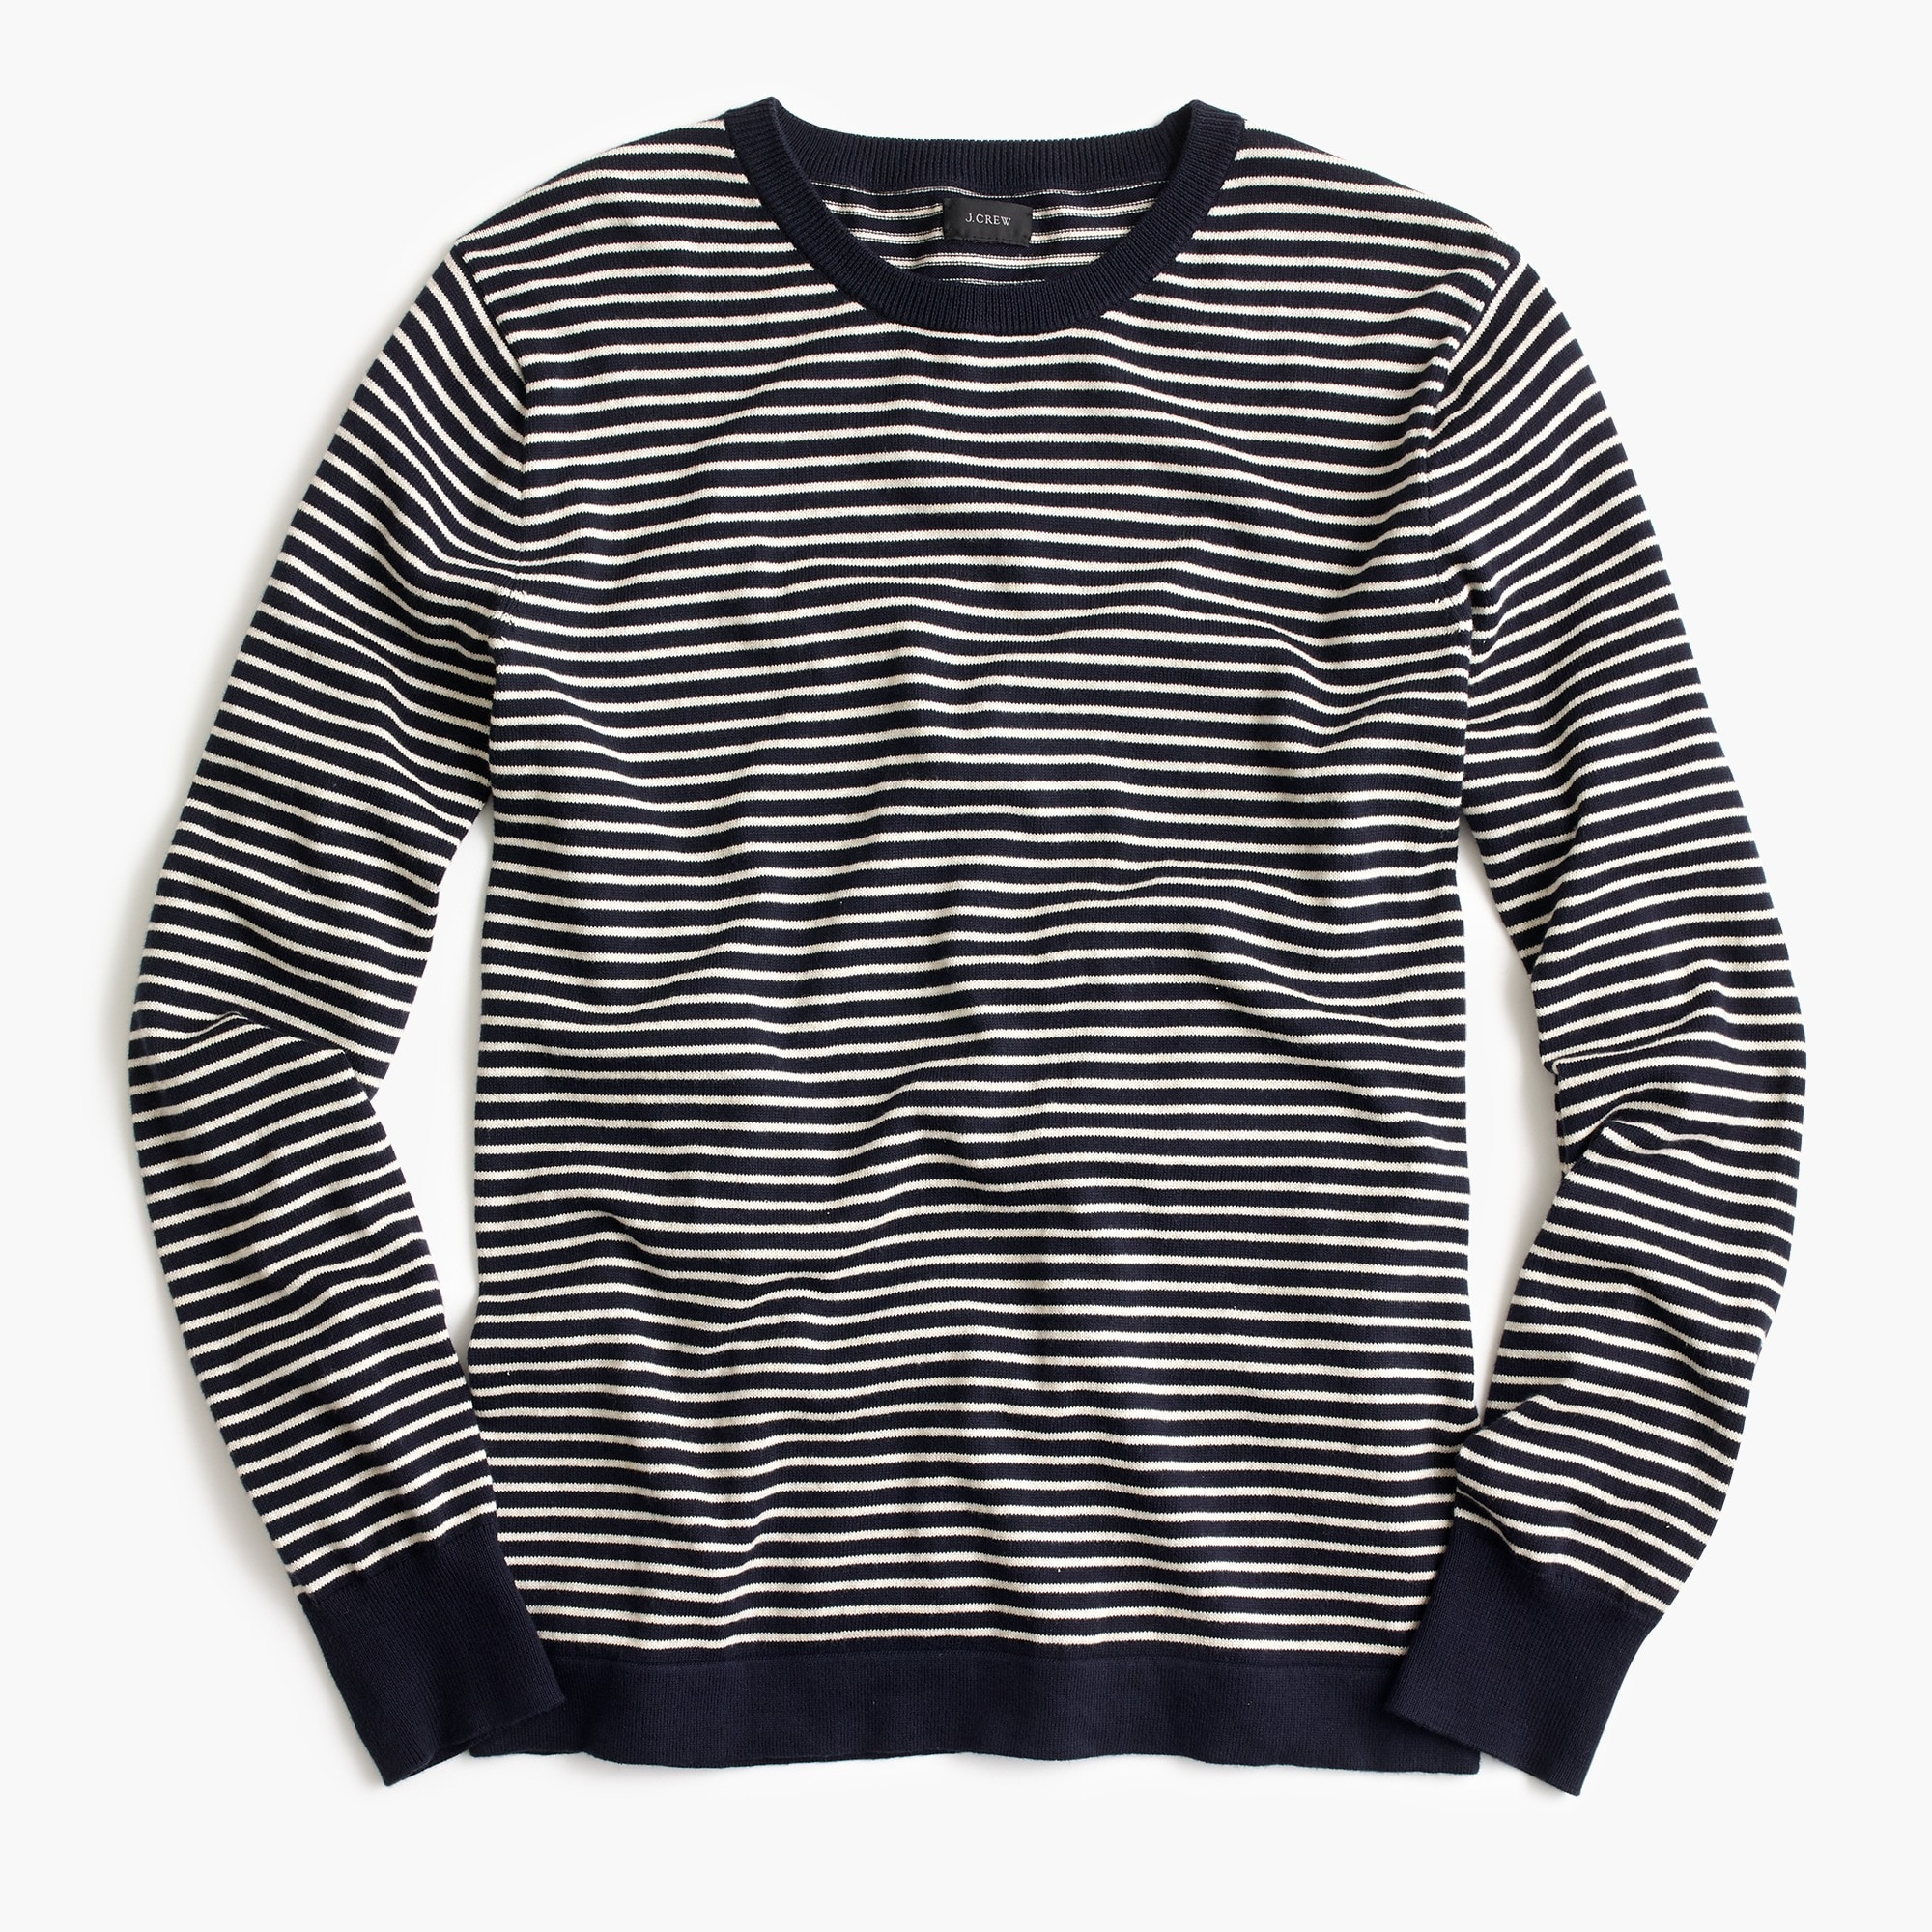 Image 2 for Cotton crewneck in dark indigo stripe